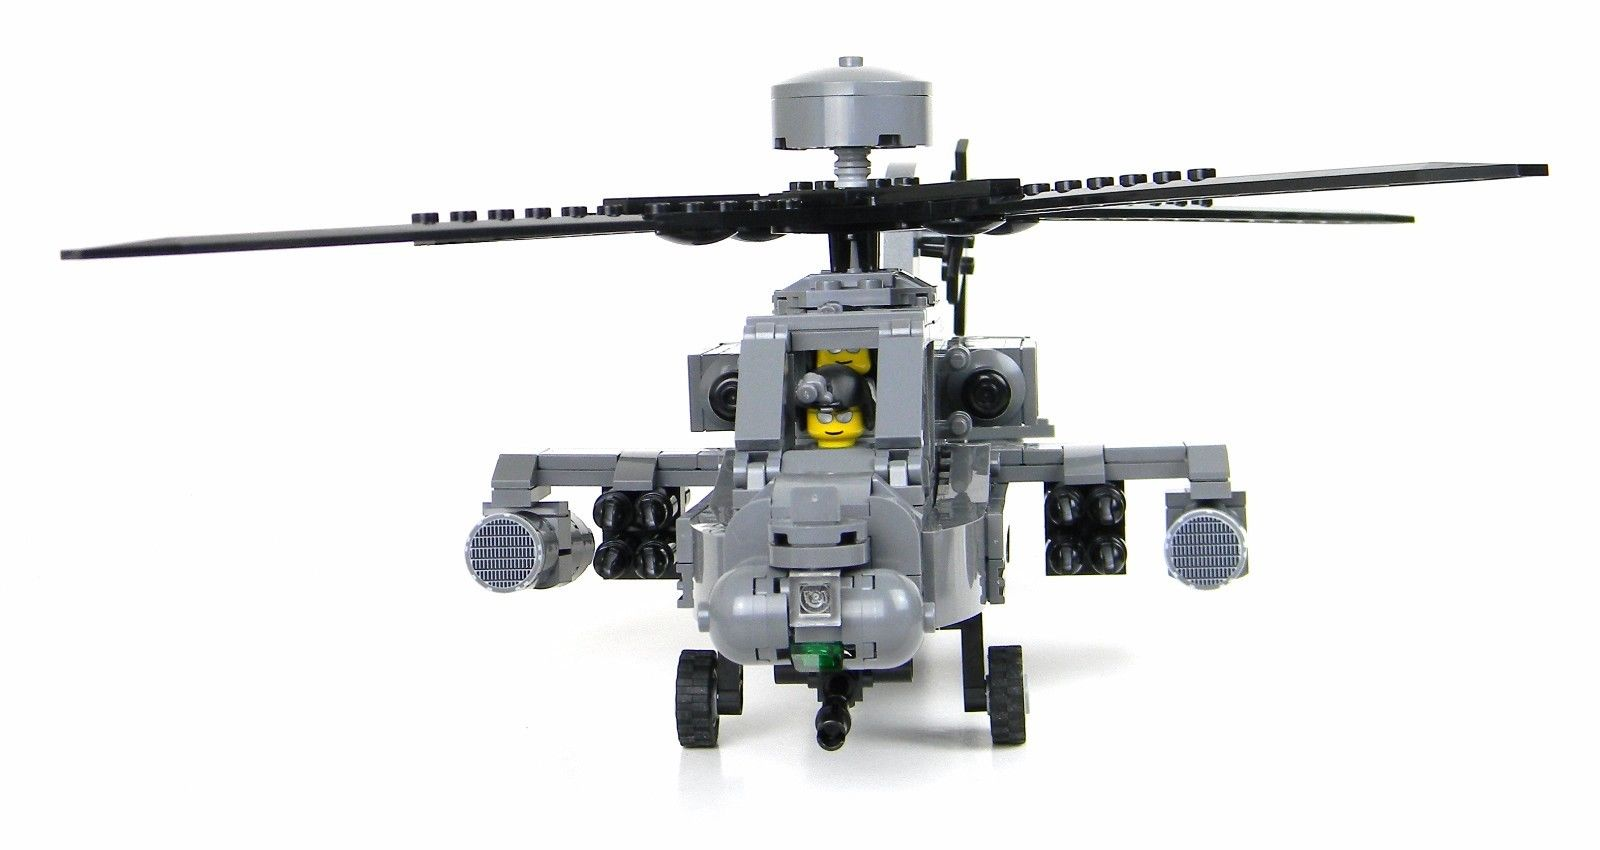 AH-64 Apache Attack Helicopter Made With Real LEGO® Bricks